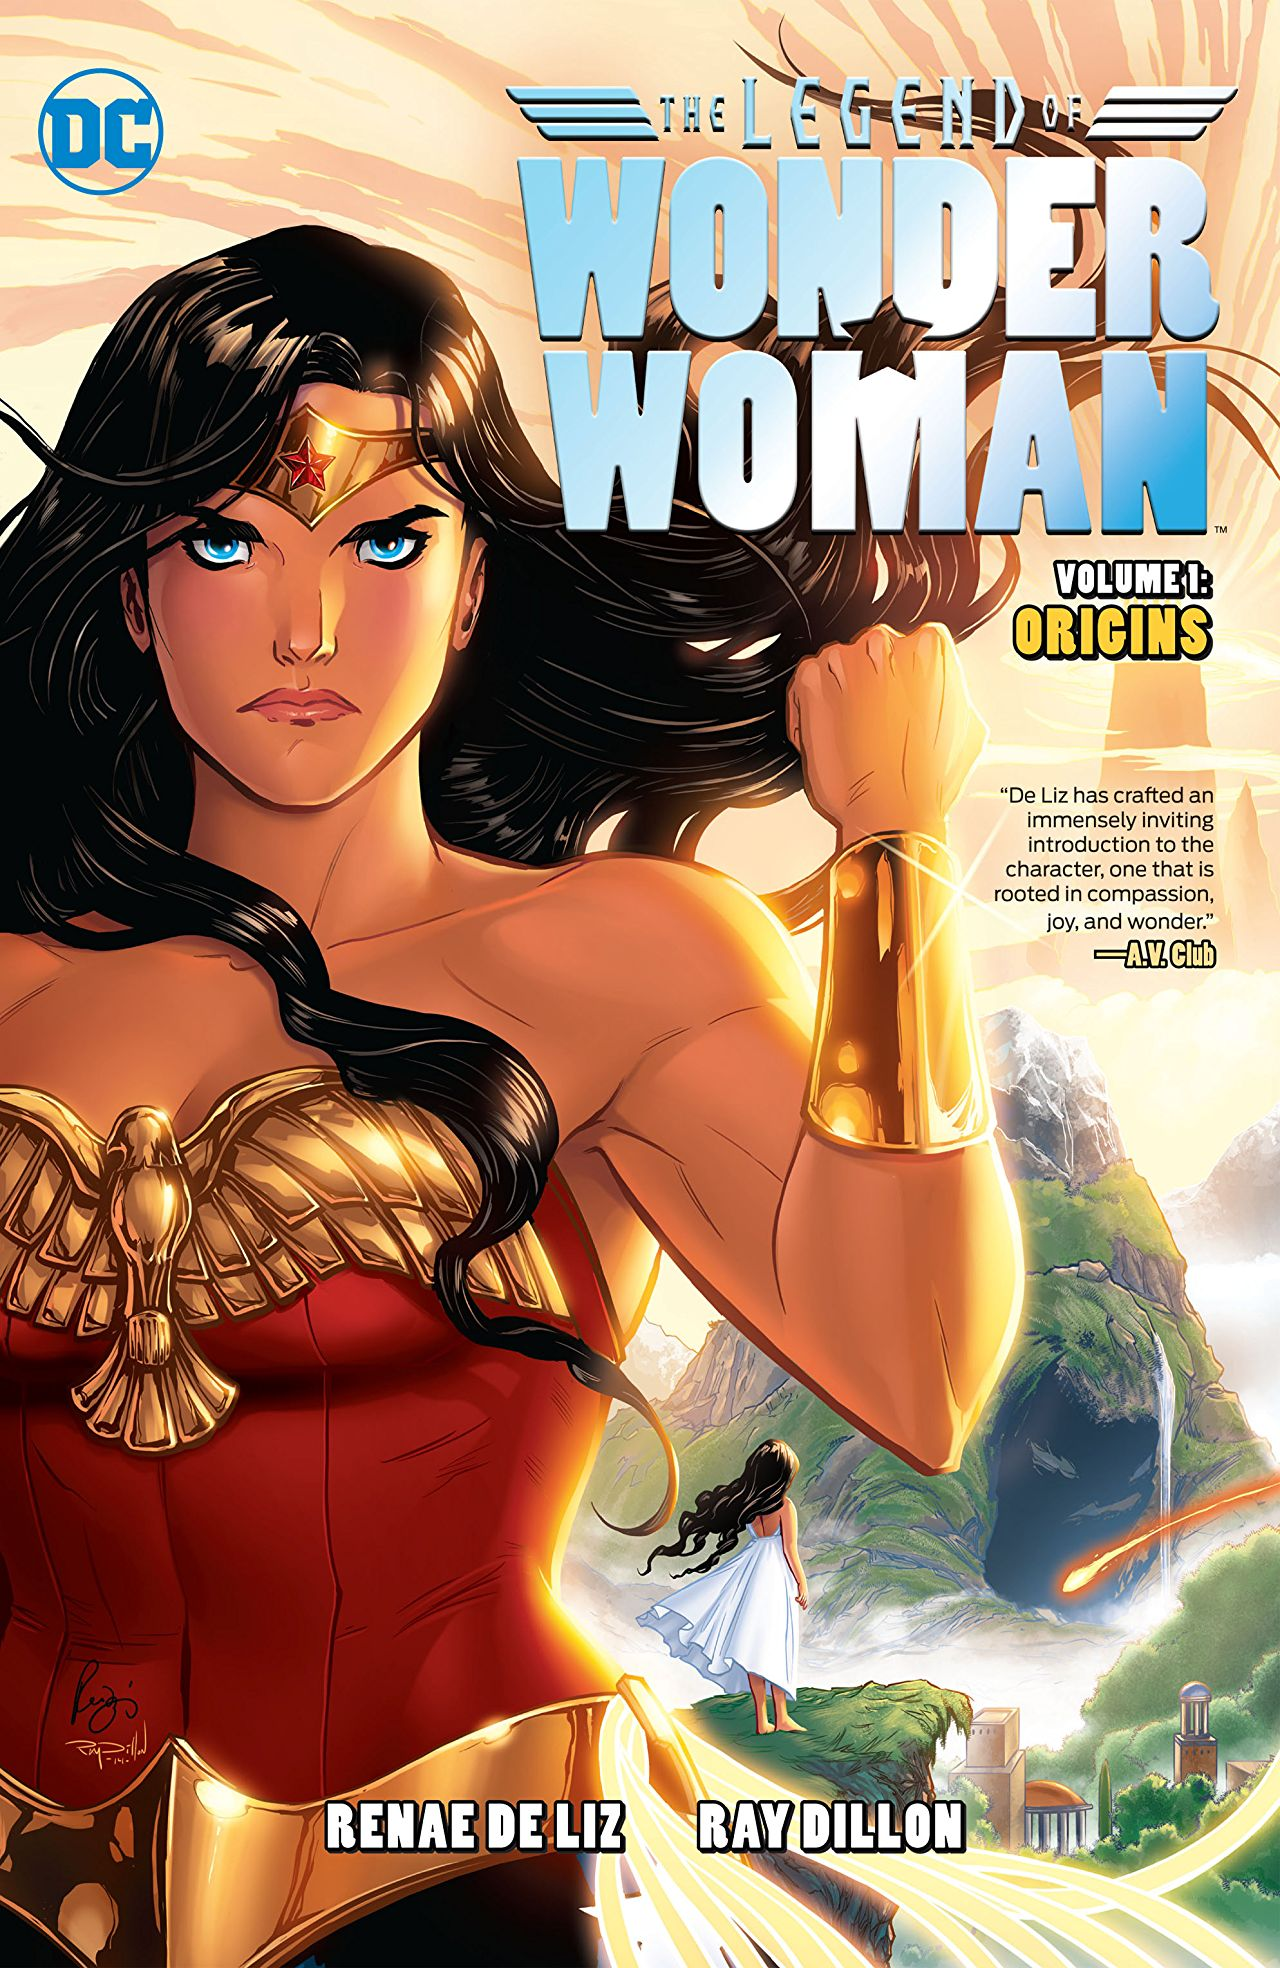 10. The Legend of Wonder Woman